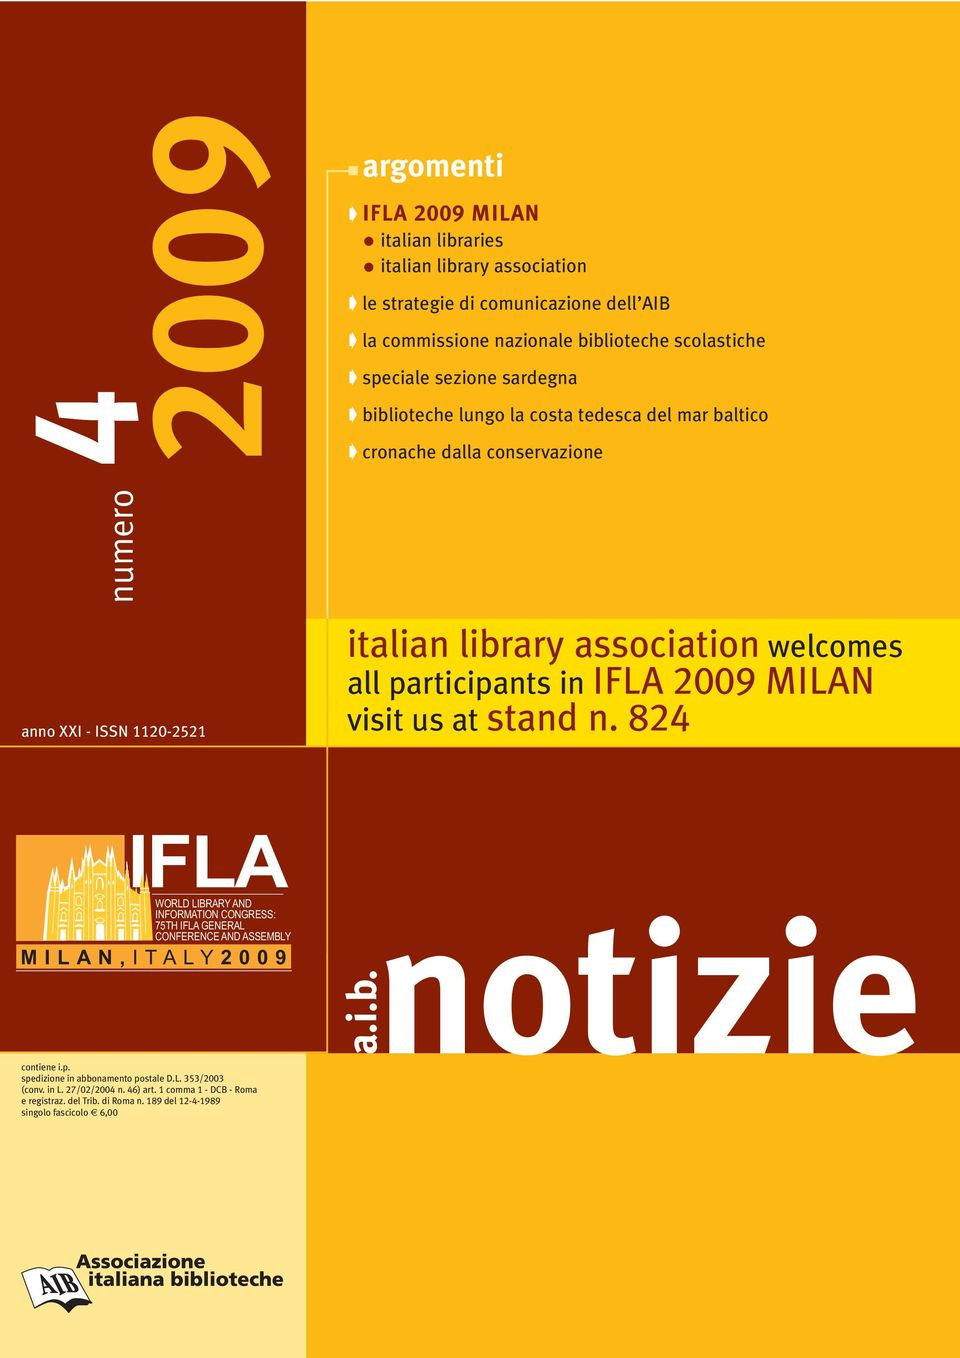 participants in IFLA 2009 MILAN visit us at stand n. 824 IFLA WORLD LIBRARY AND INFORMATION CONGRESS: 75TH IFLA GENERAL CONFERENCE AND ASSEMBLY MILAN,ITALY2009 a.i.b.